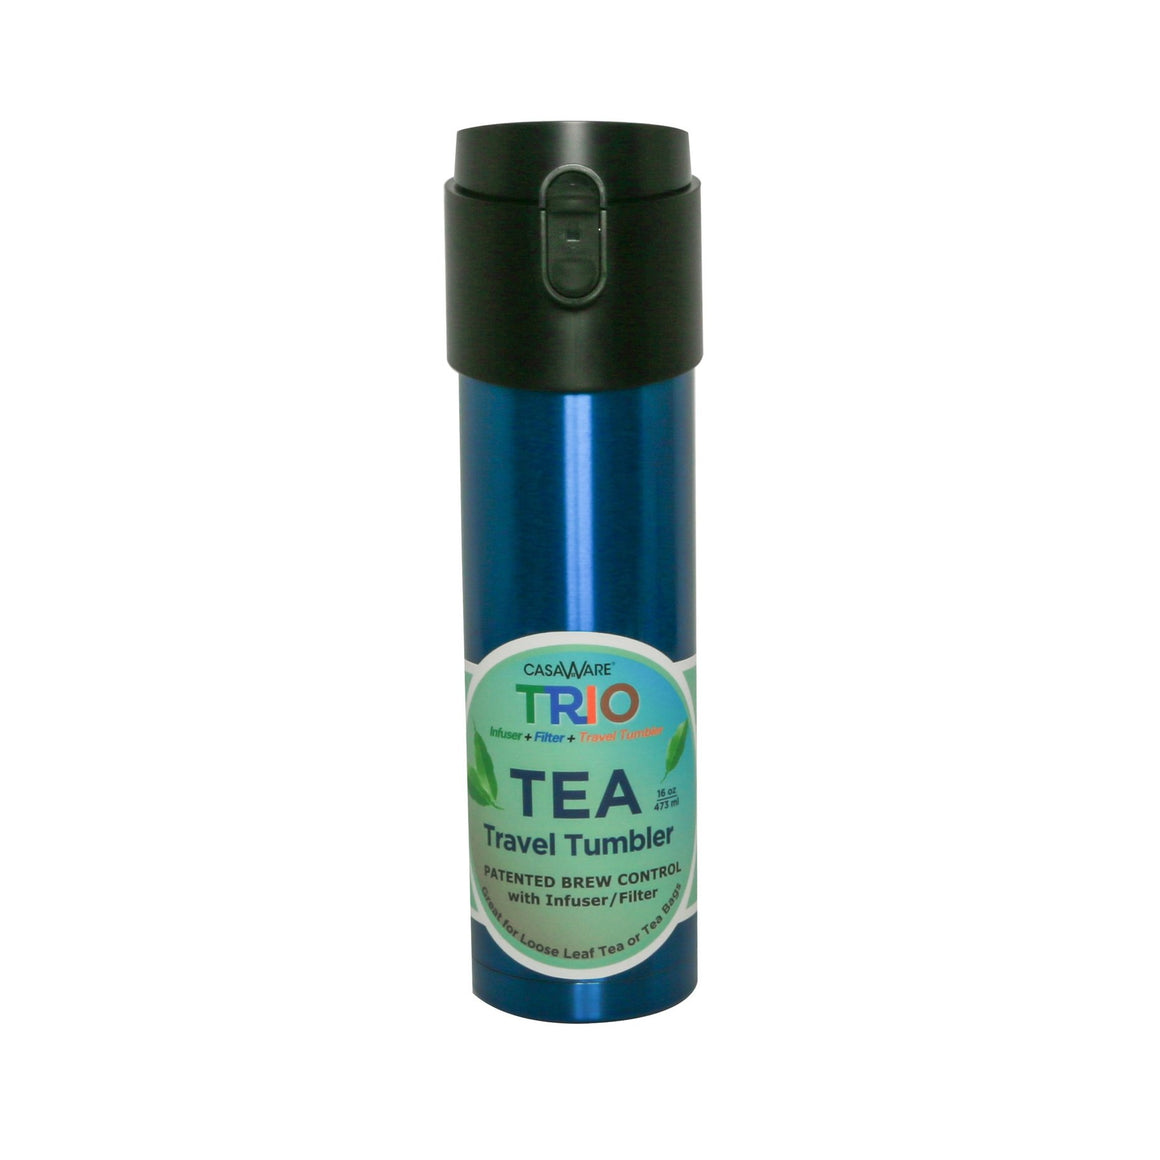 Trio Tea Travel Tumbler 16 oz